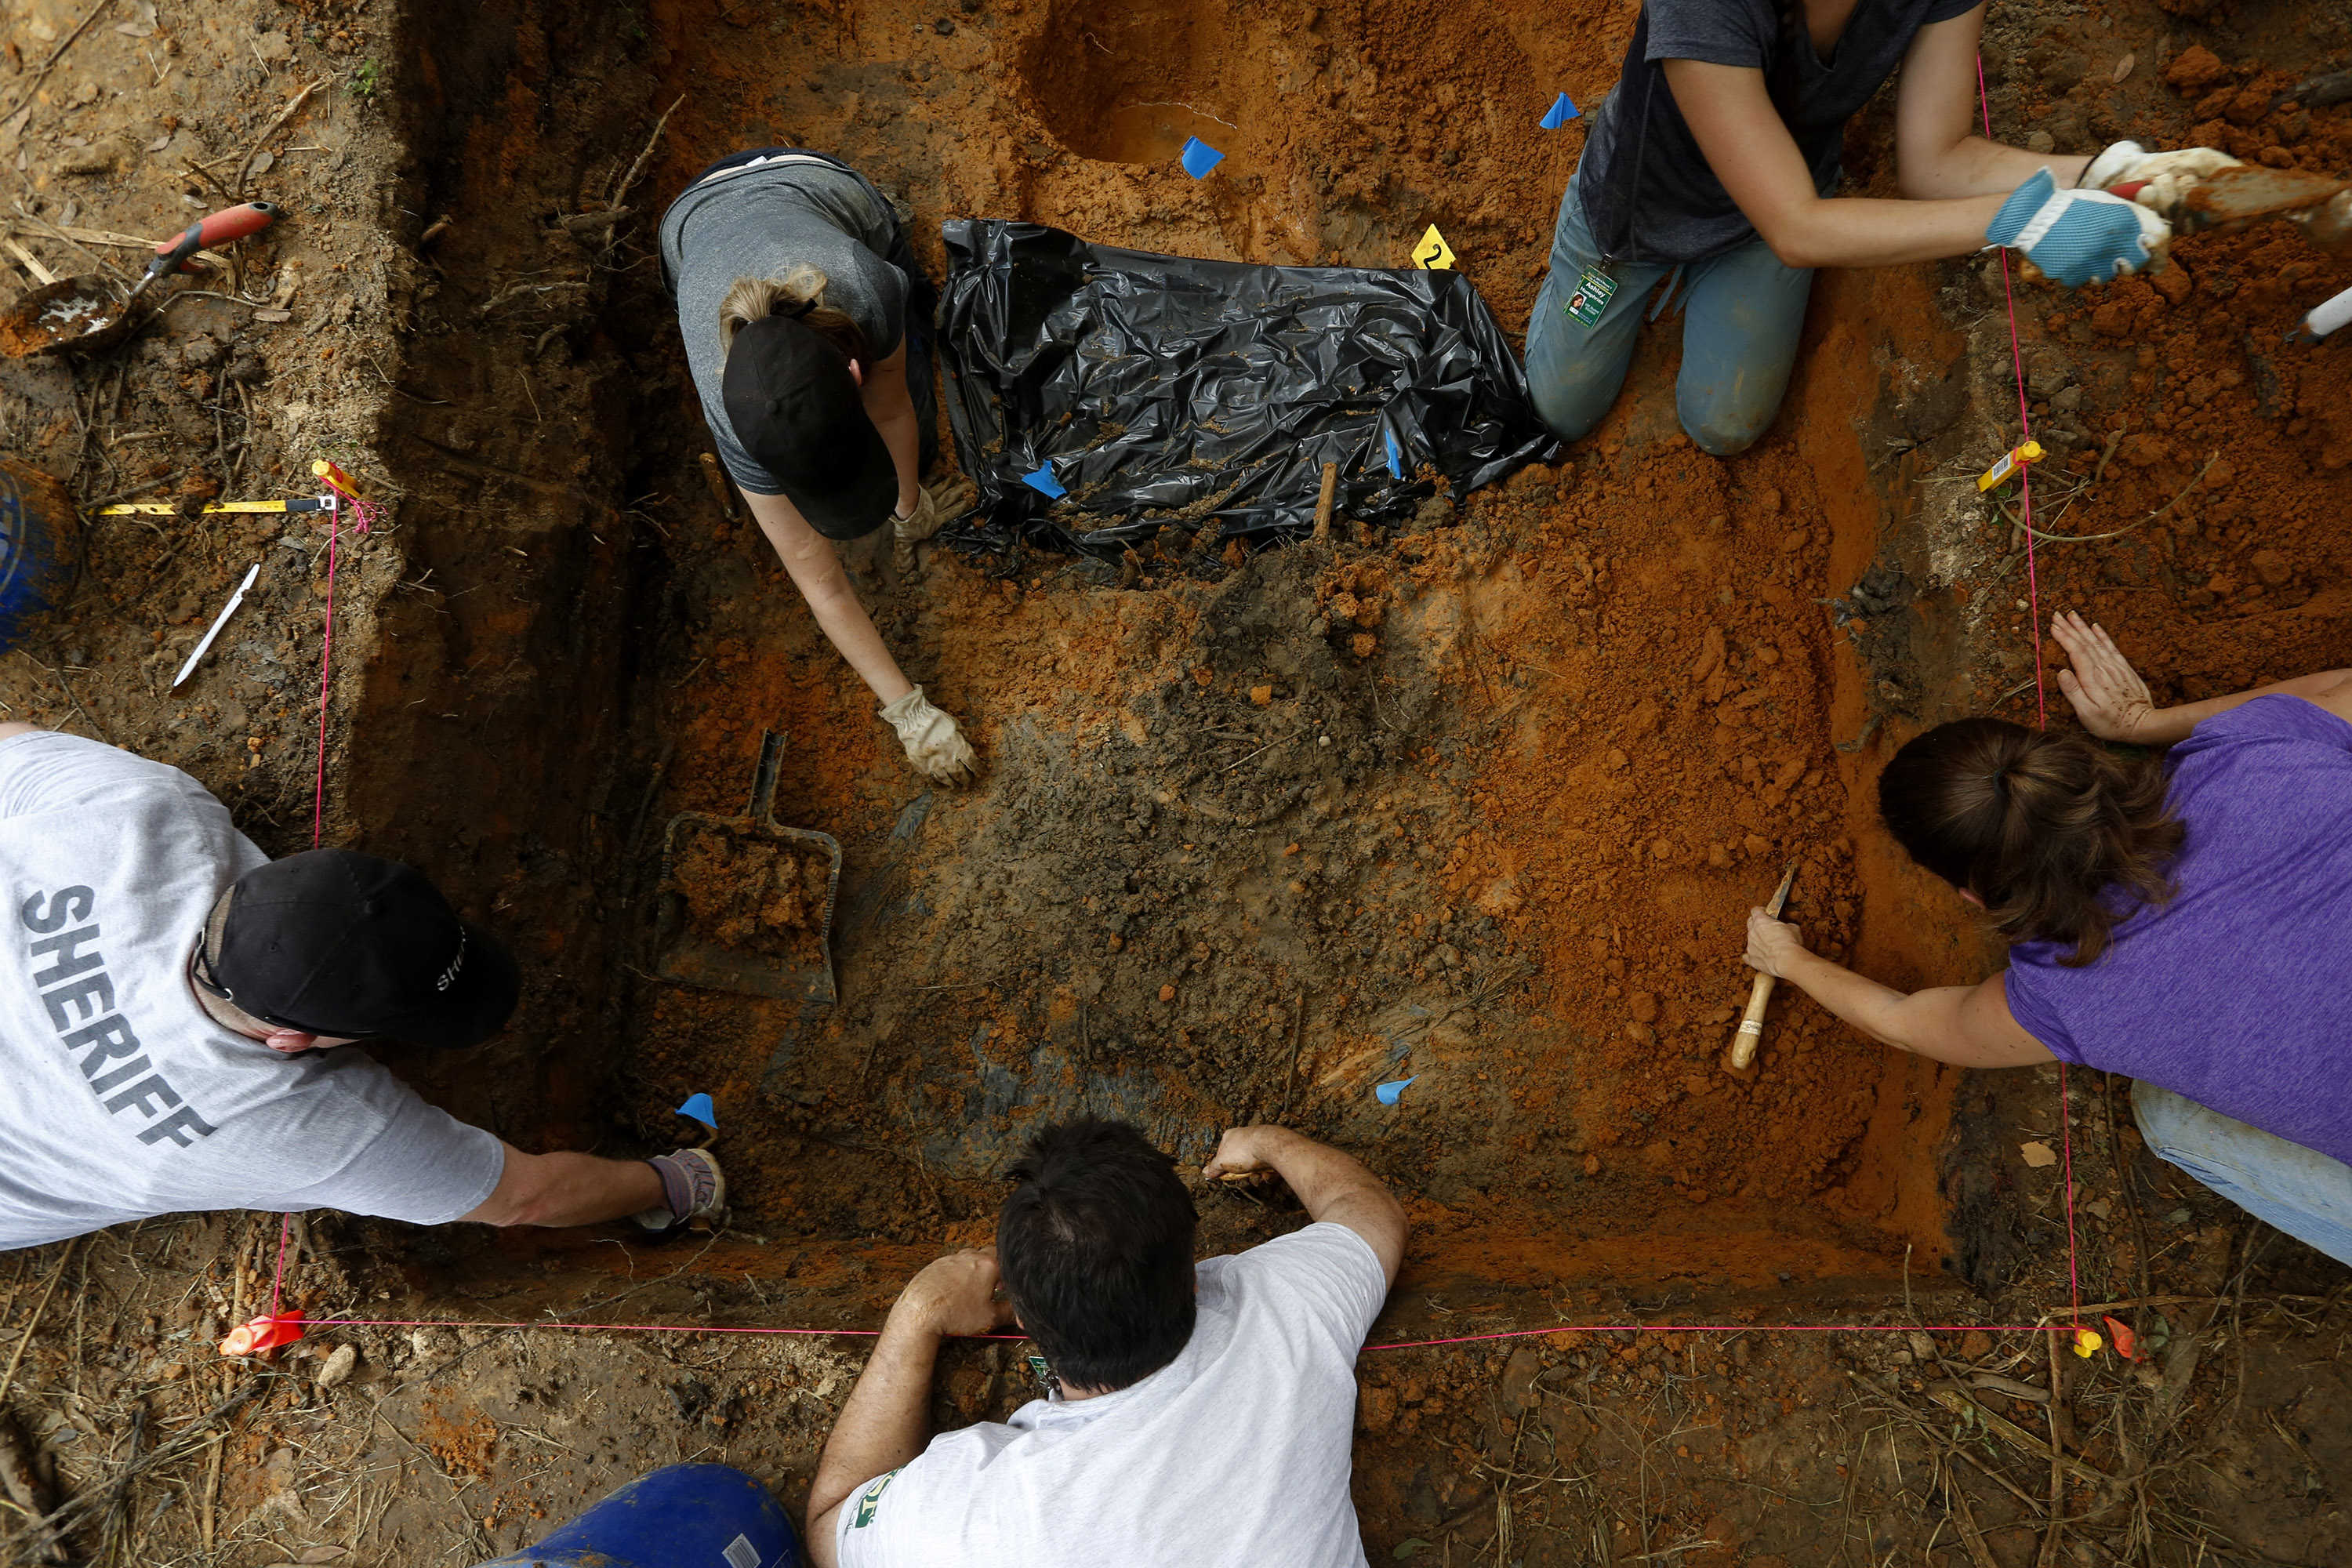 Anthropologists from the University of South Florida continued exhuming gravesites in the Boot Hill cemetery at the now closed Arthur G. Dozier School for Boys in Marianna, Florida, September 1, 2013. REUTERS/Edmund D. Fountain/Pool